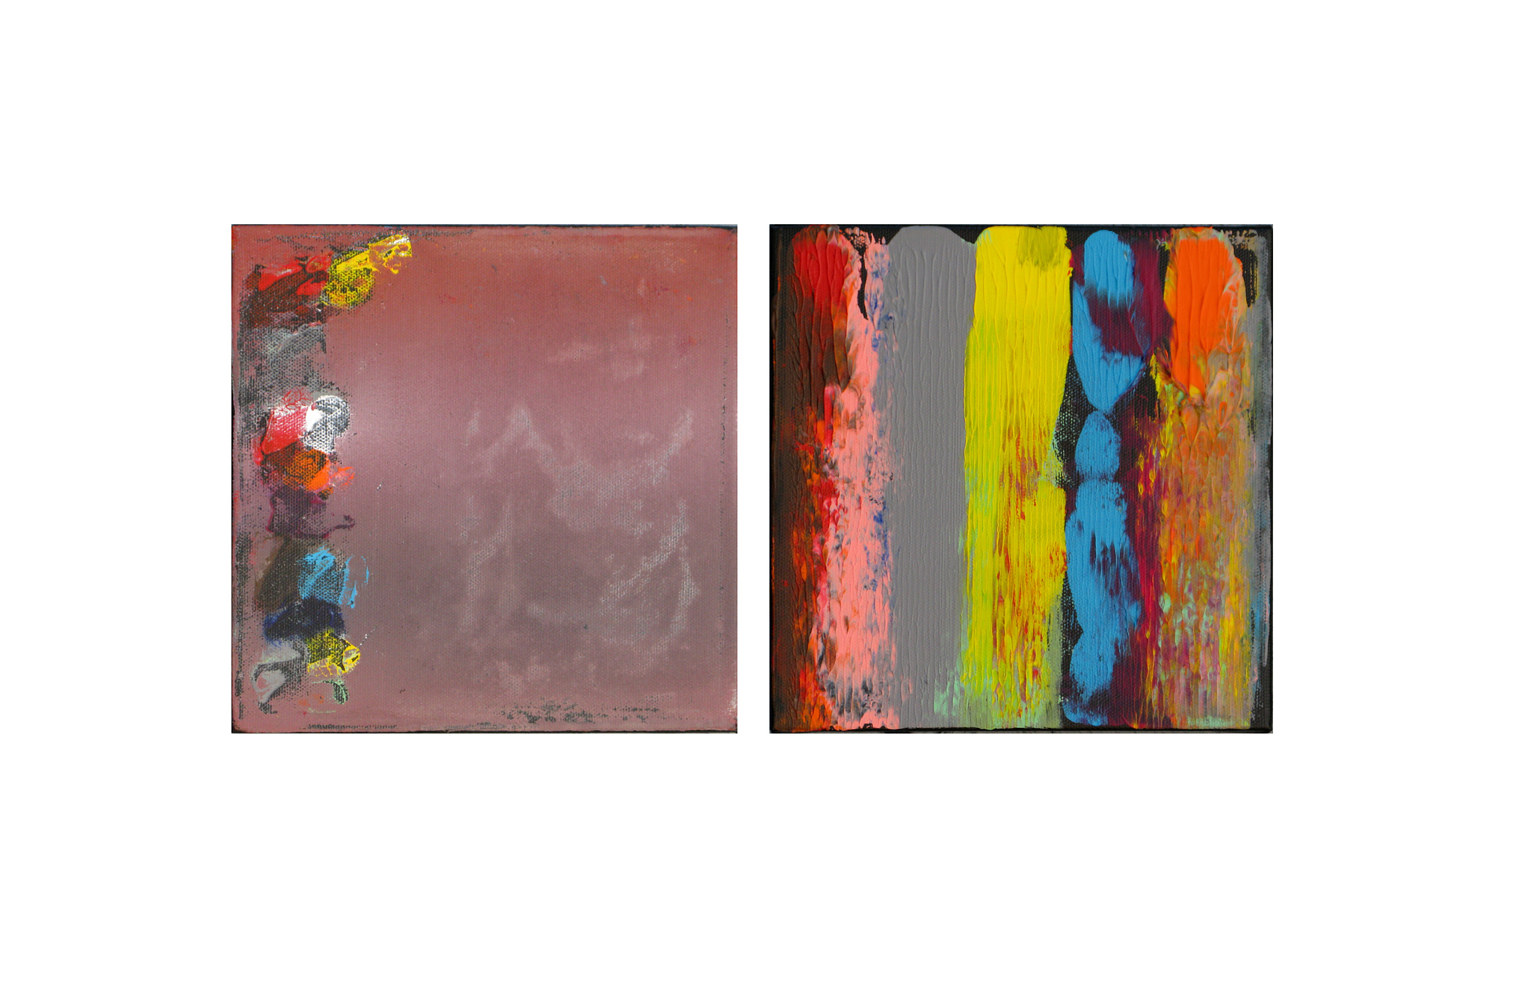 Acrylic painting Color Storm Contrast II, 8x8 inches each by Hooshang Khorasani